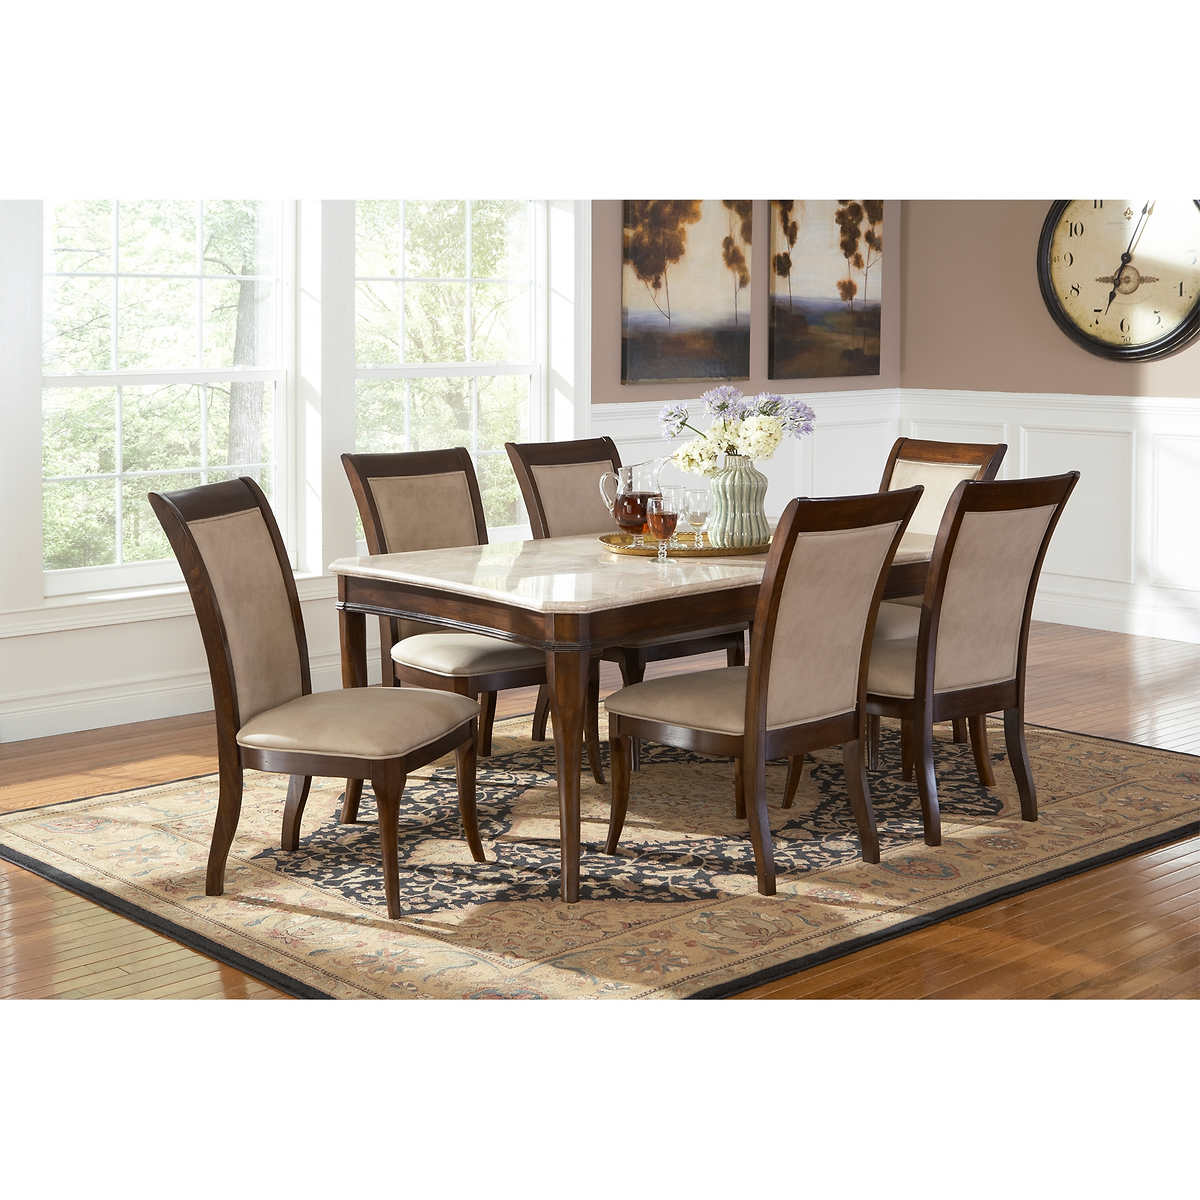 7 dining sets costco